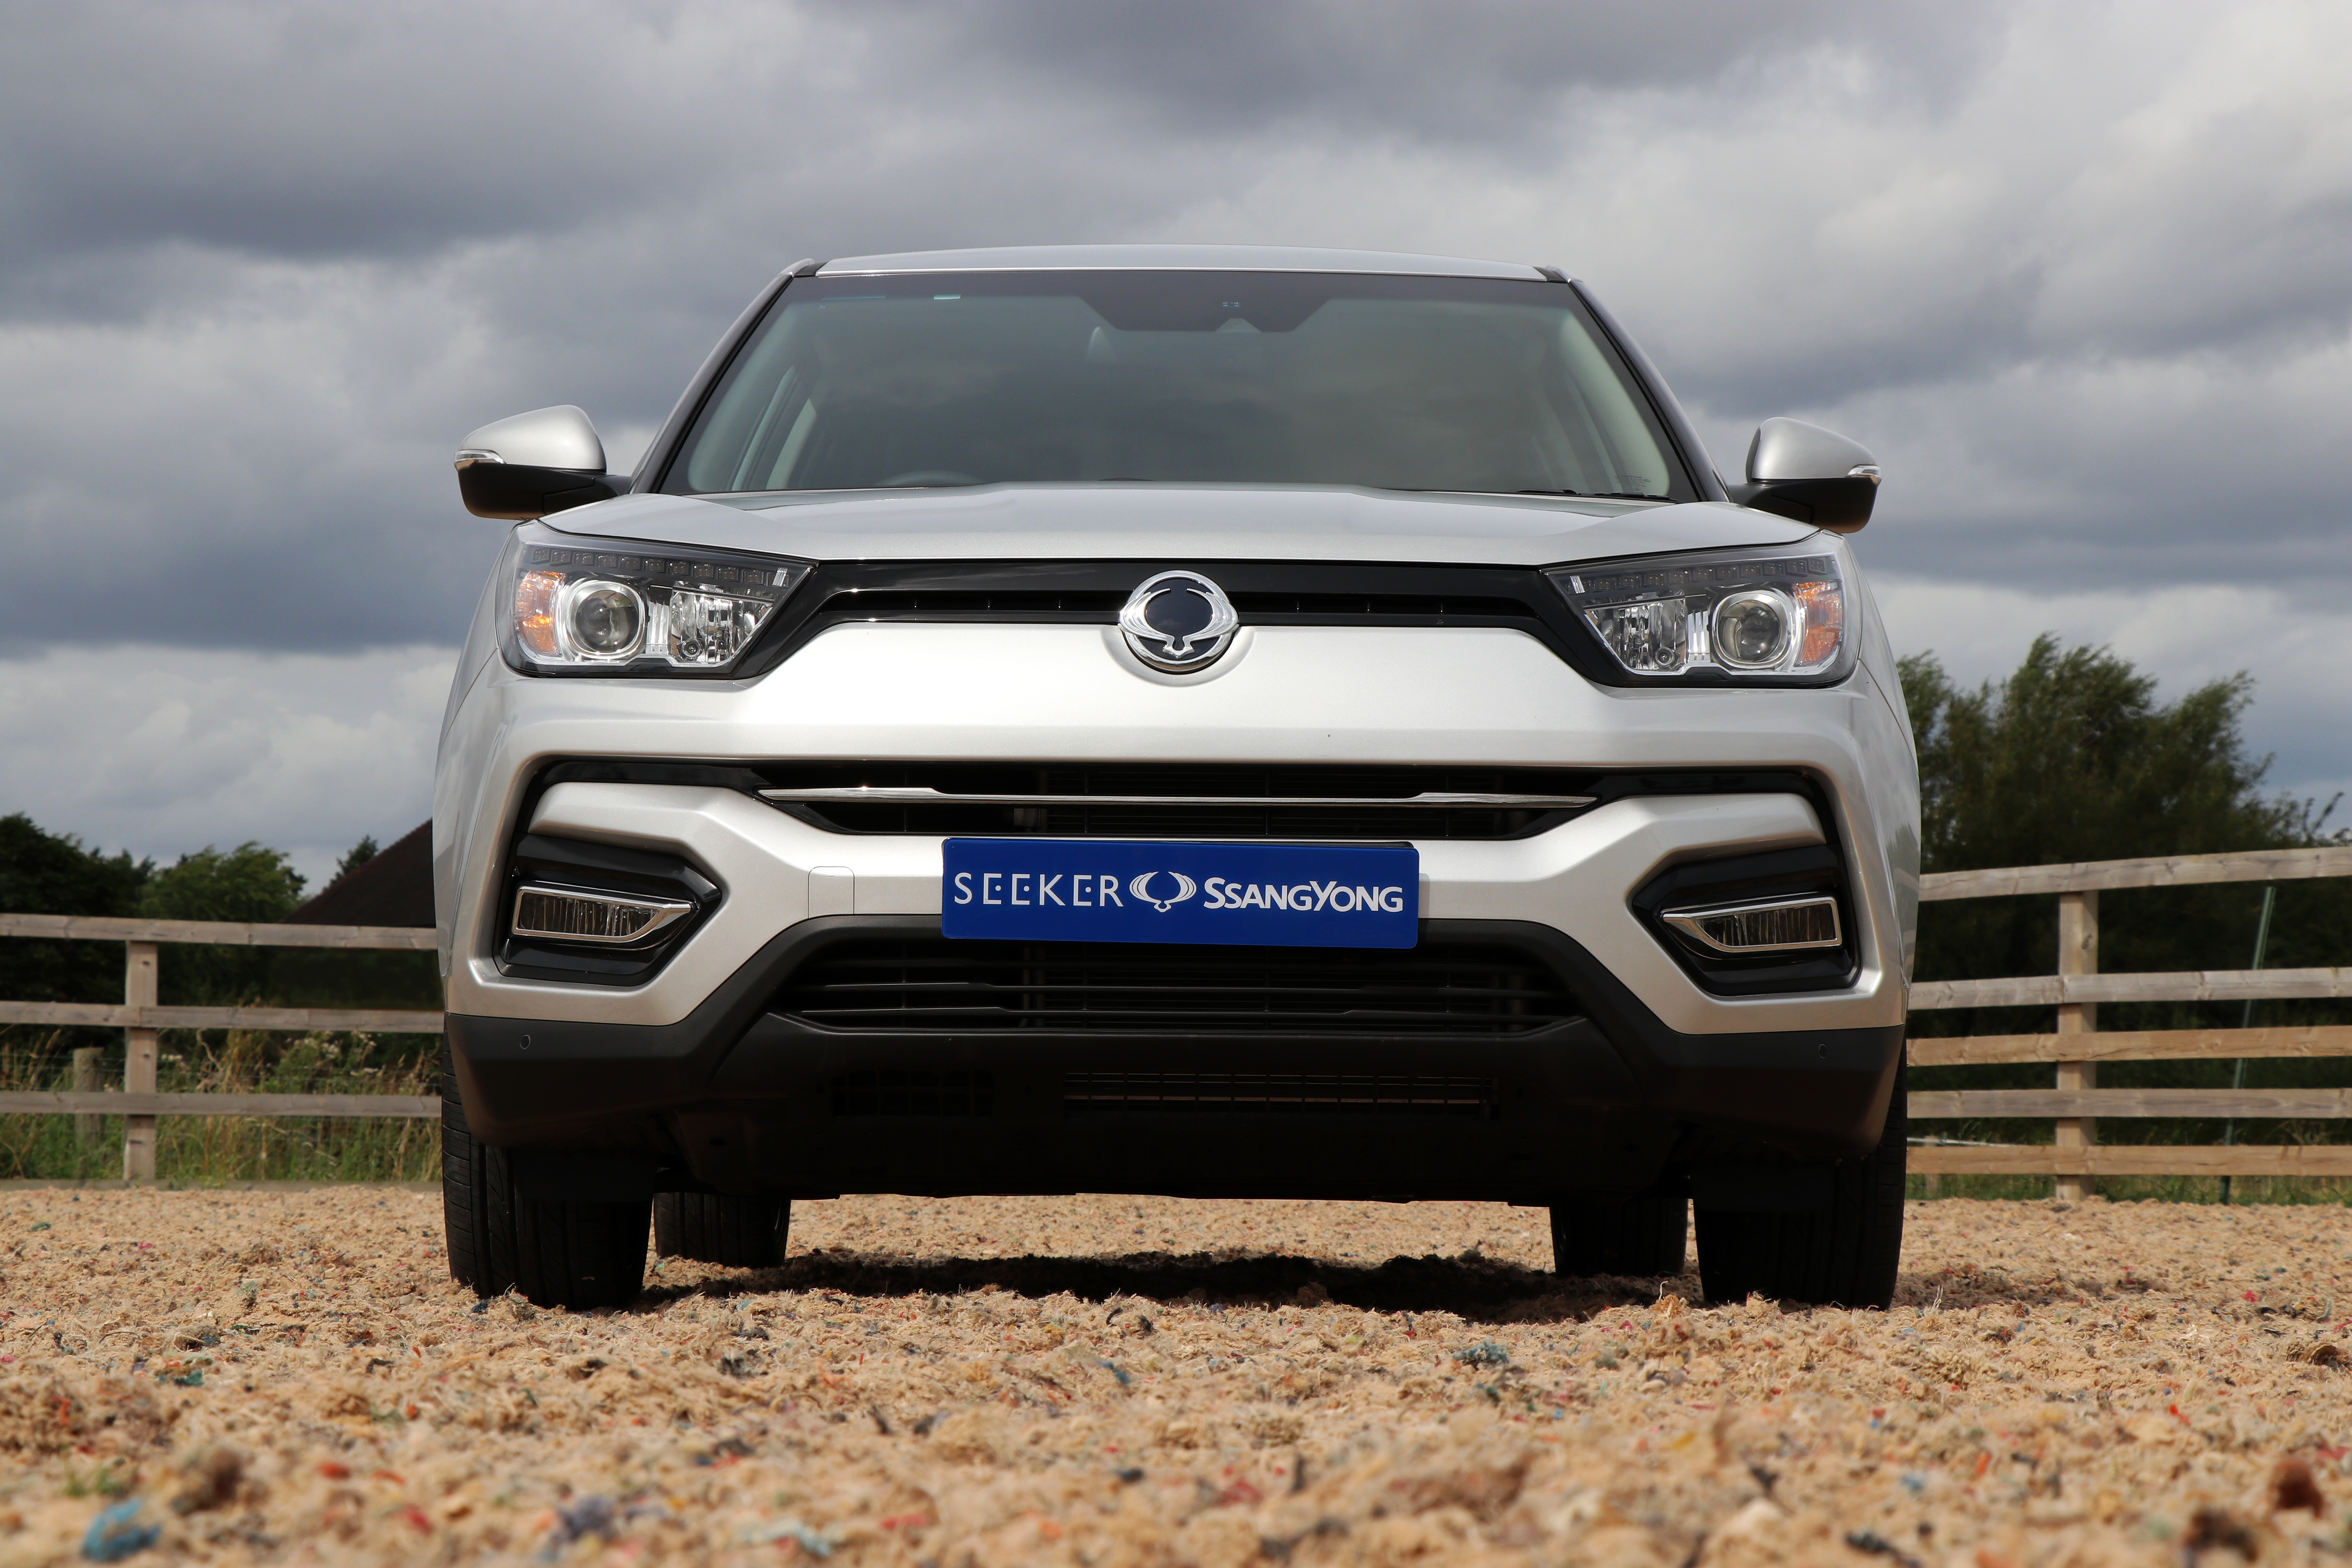 IN STOCK! £3,000 saving on pre registered Tivoli Ultimate petrol models at Seeker SsangYong!